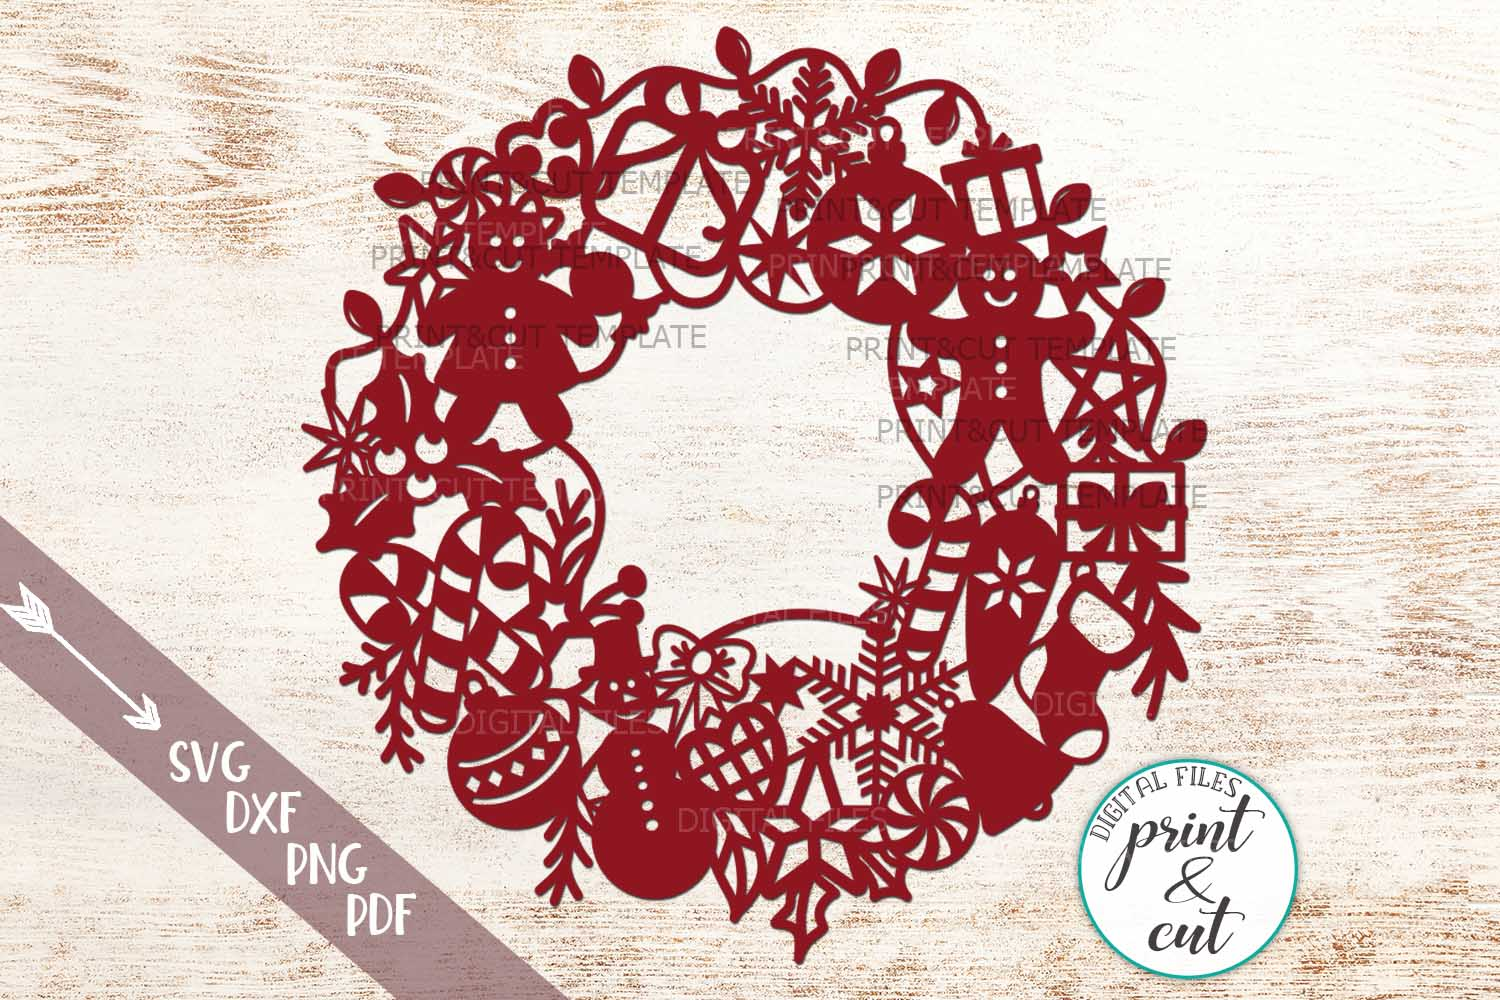 Download Free Christmas Wreath Svg Grafik Von Cornelia Creative Fabrica for Cricut Explore, Silhouette and other cutting machines.